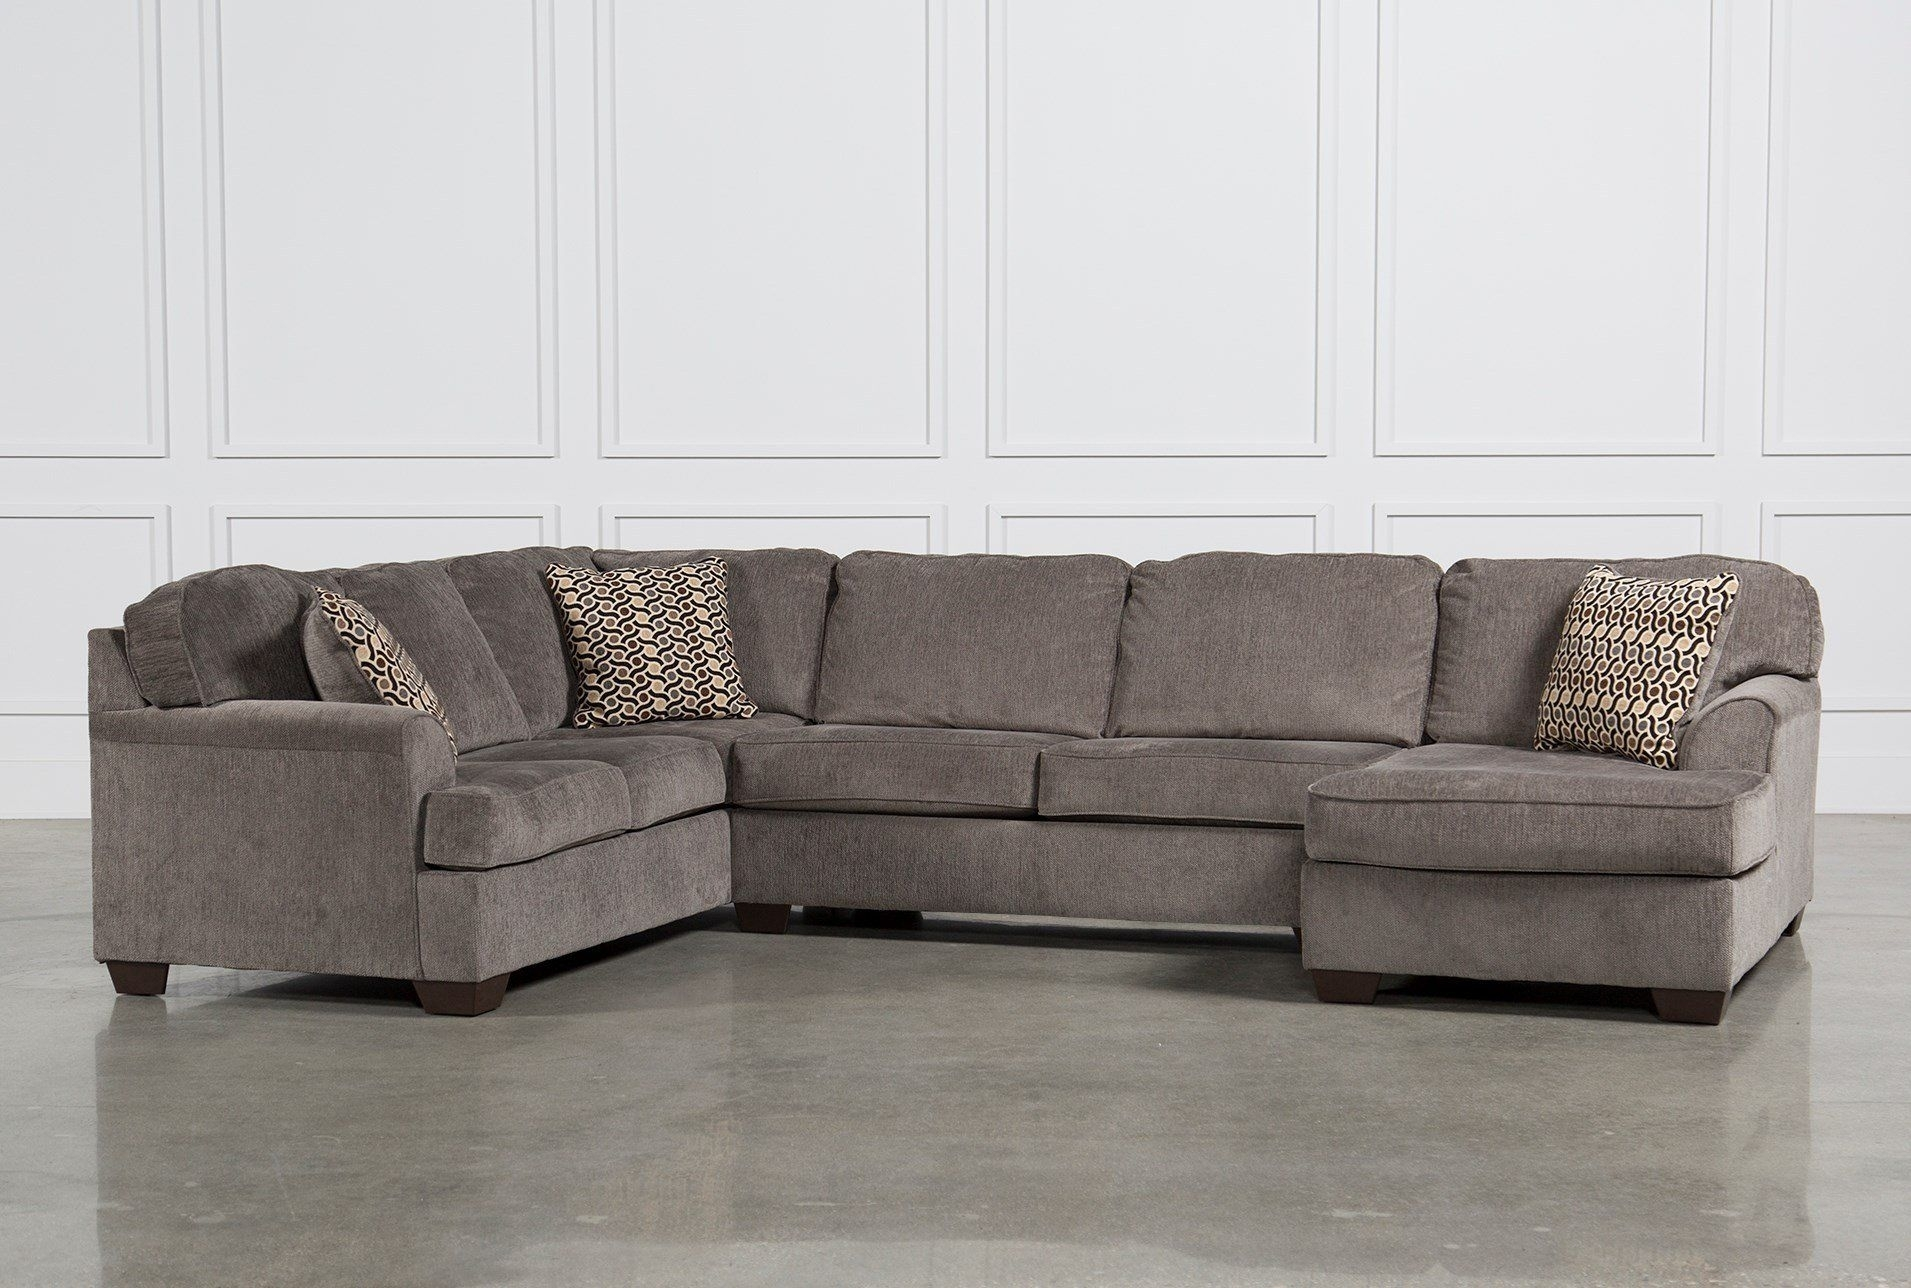 Loric Smoke 3 Piece Sectional W/raf Chaise | Upholstery, Pillows And inside Meyer 3 Piece Sectionals With Laf Chaise (Image 14 of 30)